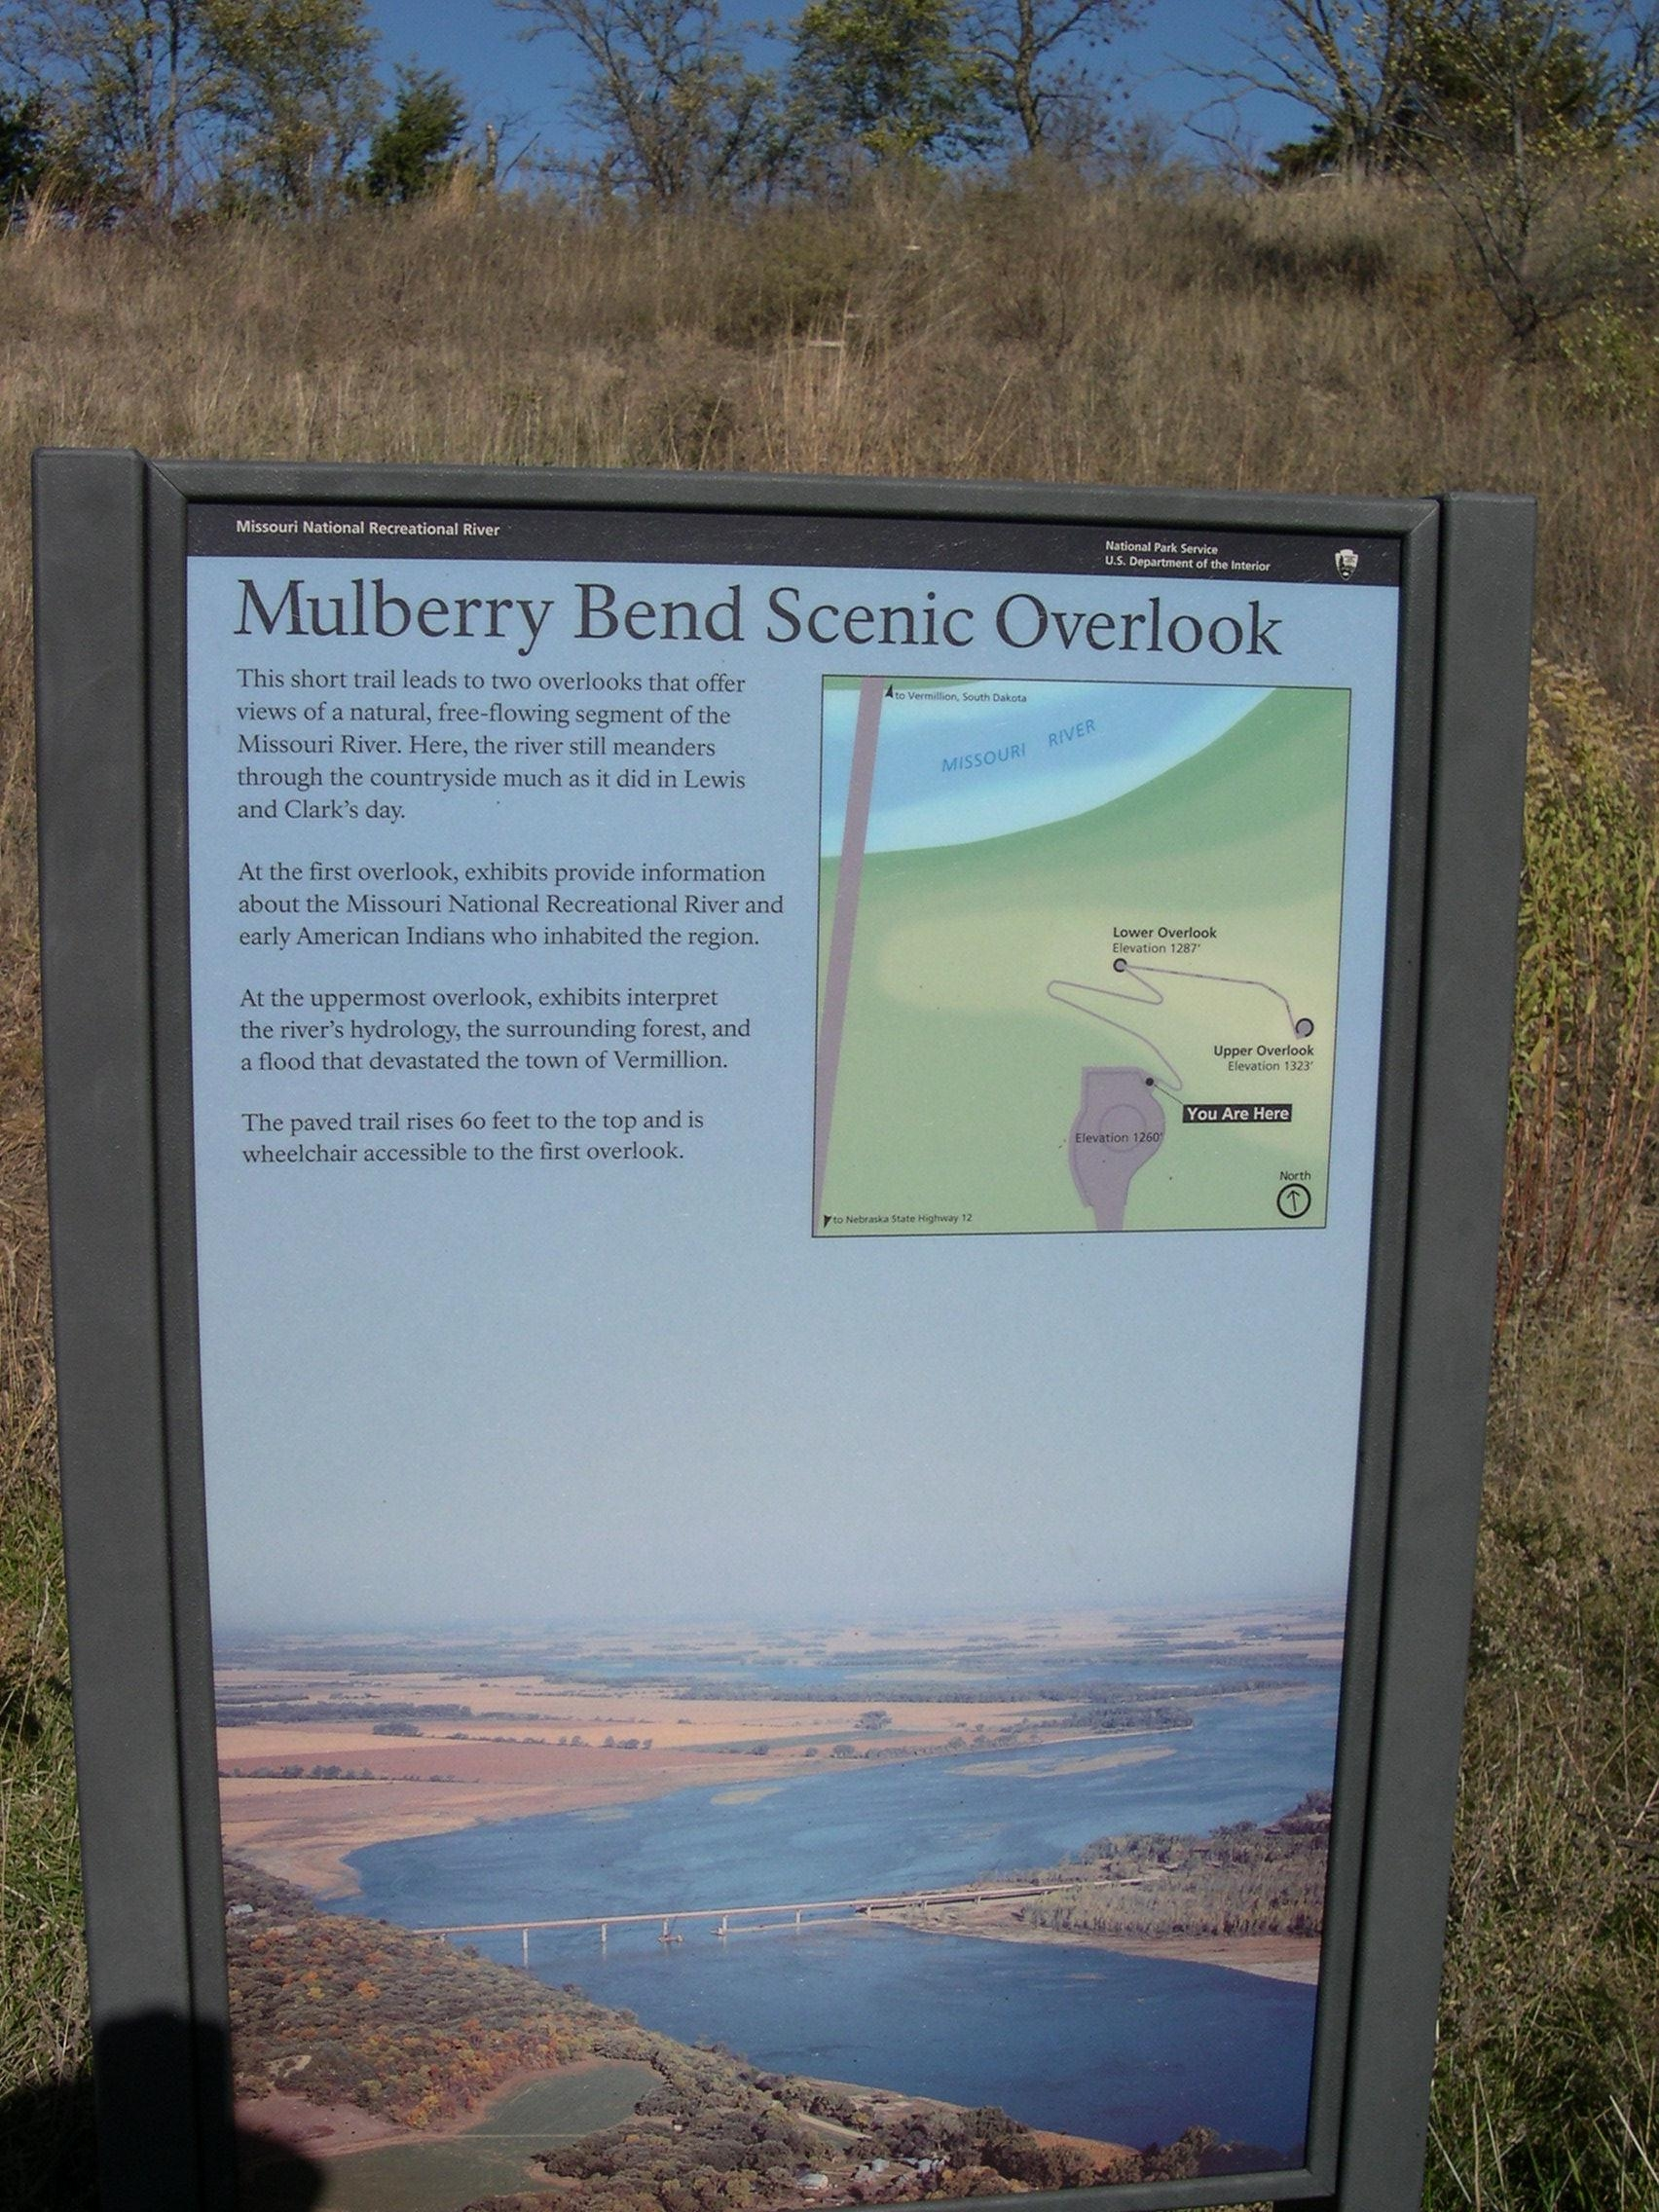 This sign is located at the beginning of the trail